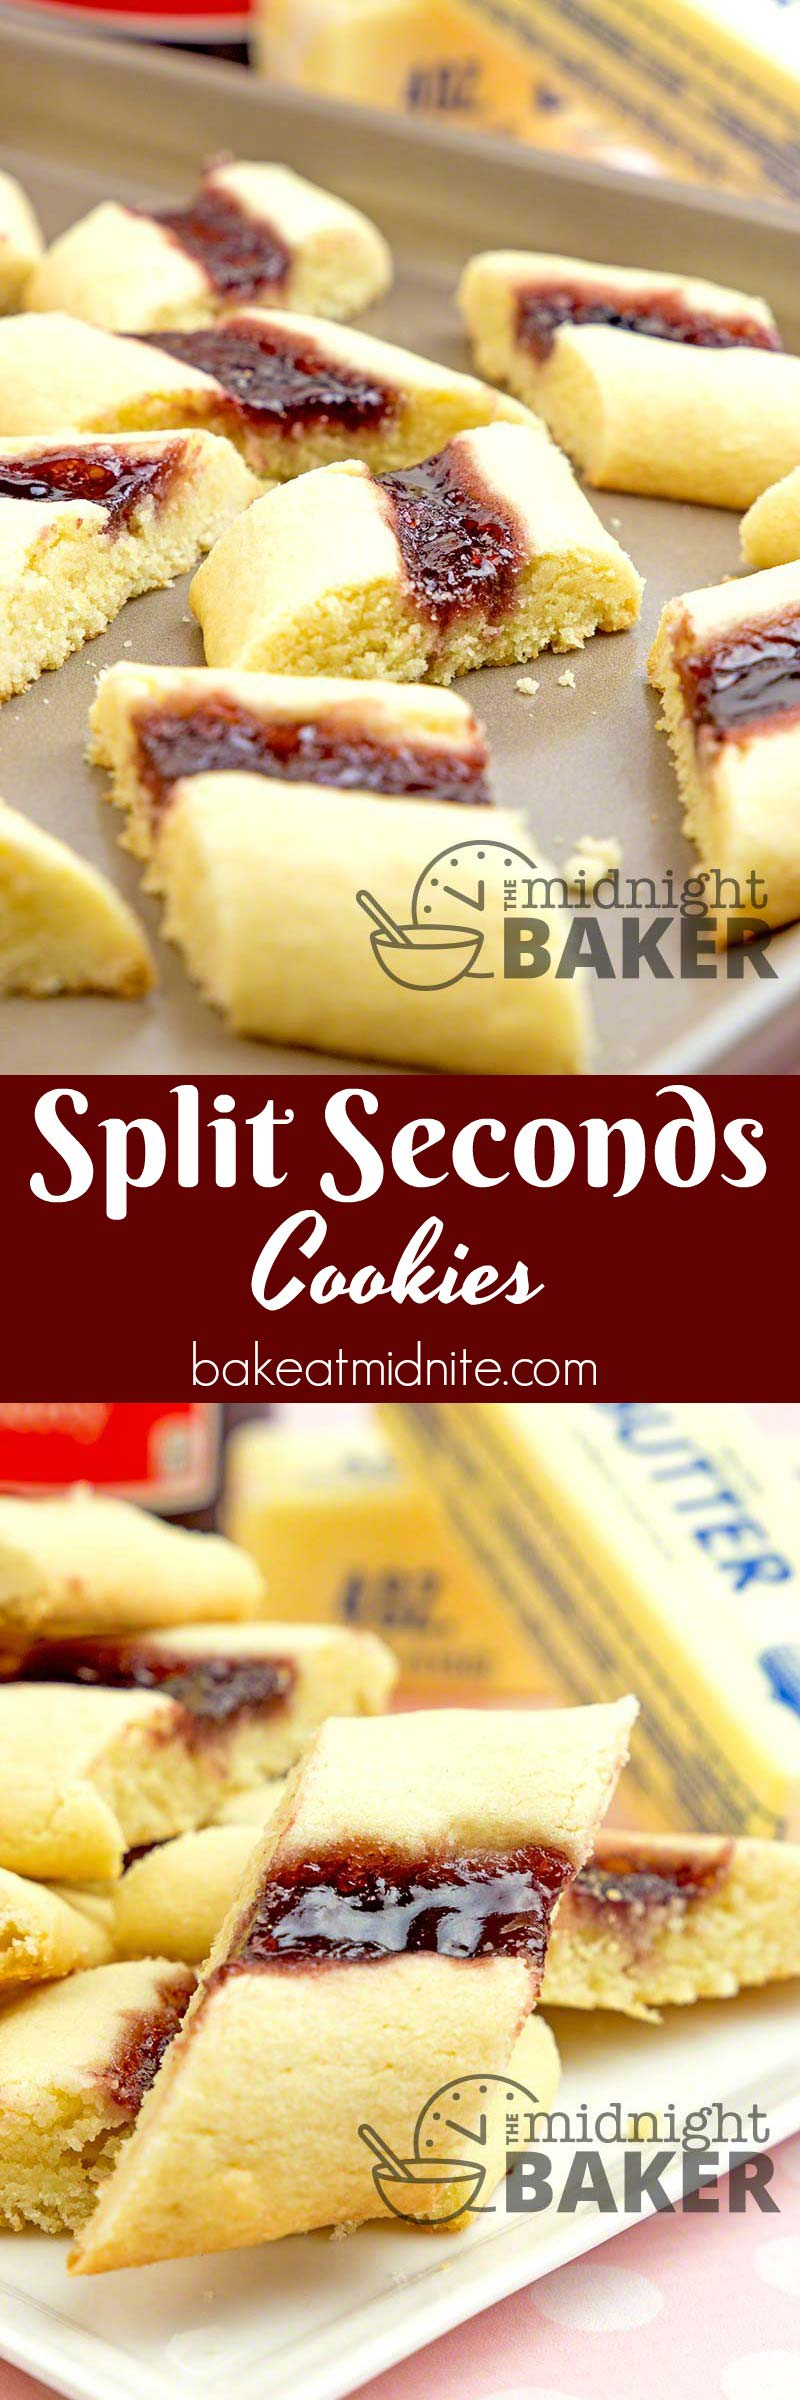 A beloved cookie for over 60 years. They originally from an old Pillsbury bake-off. They endure because they're tasty and very easy to make.